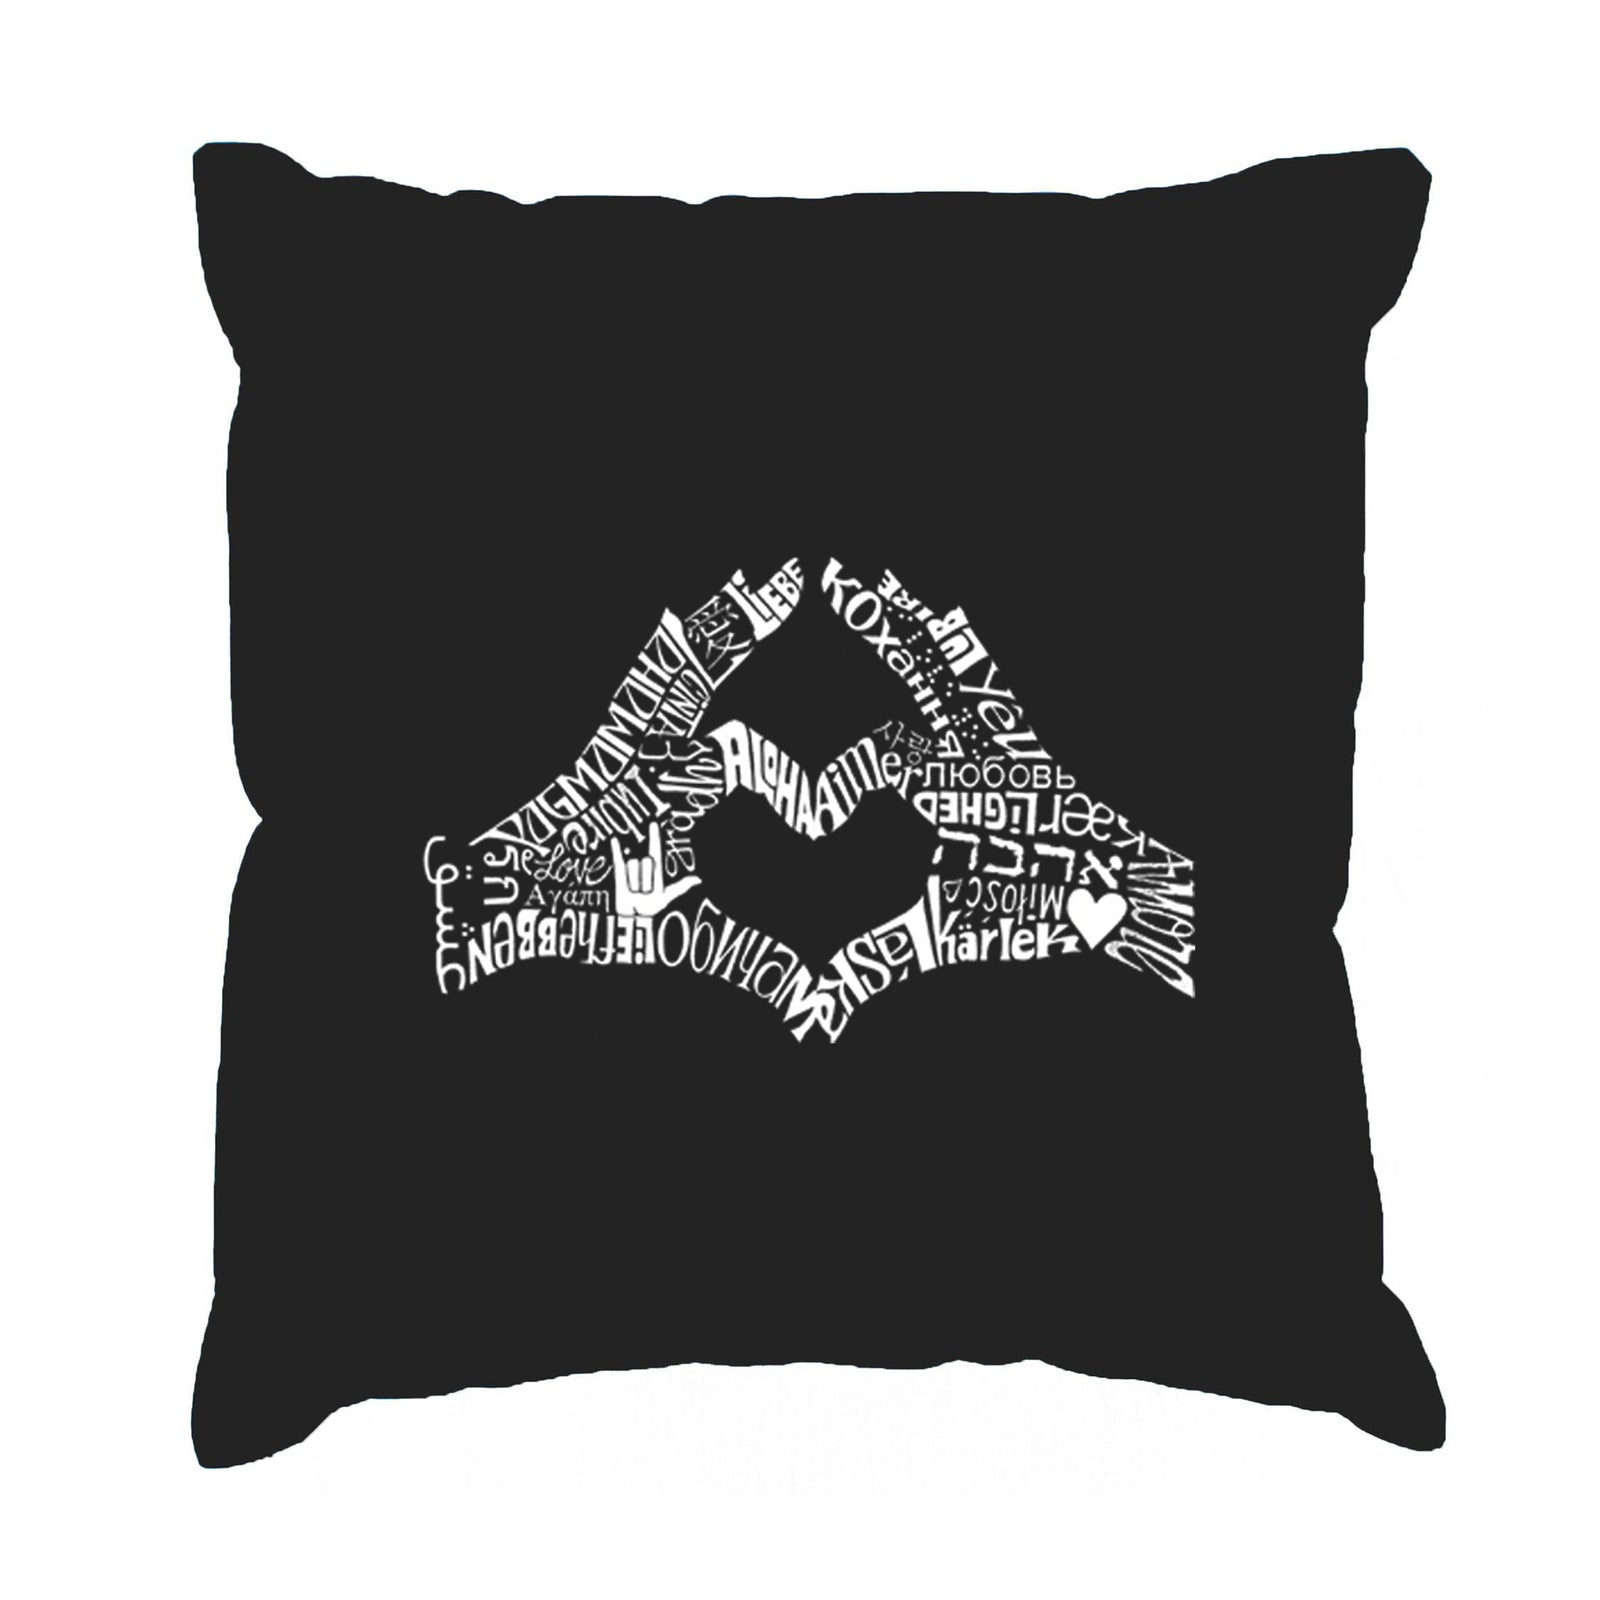 Throw Pillow Cover - Finger Heart